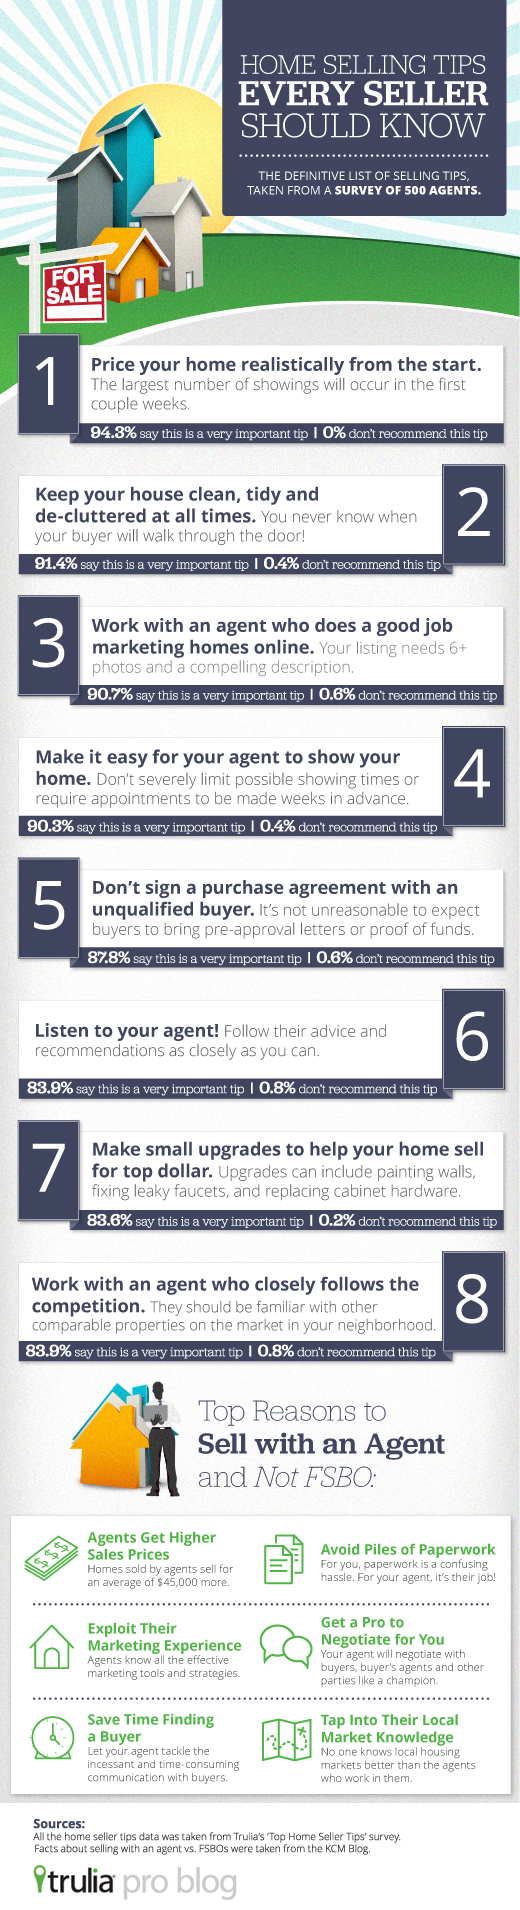 Home Selling Tips Every Seller Should Know